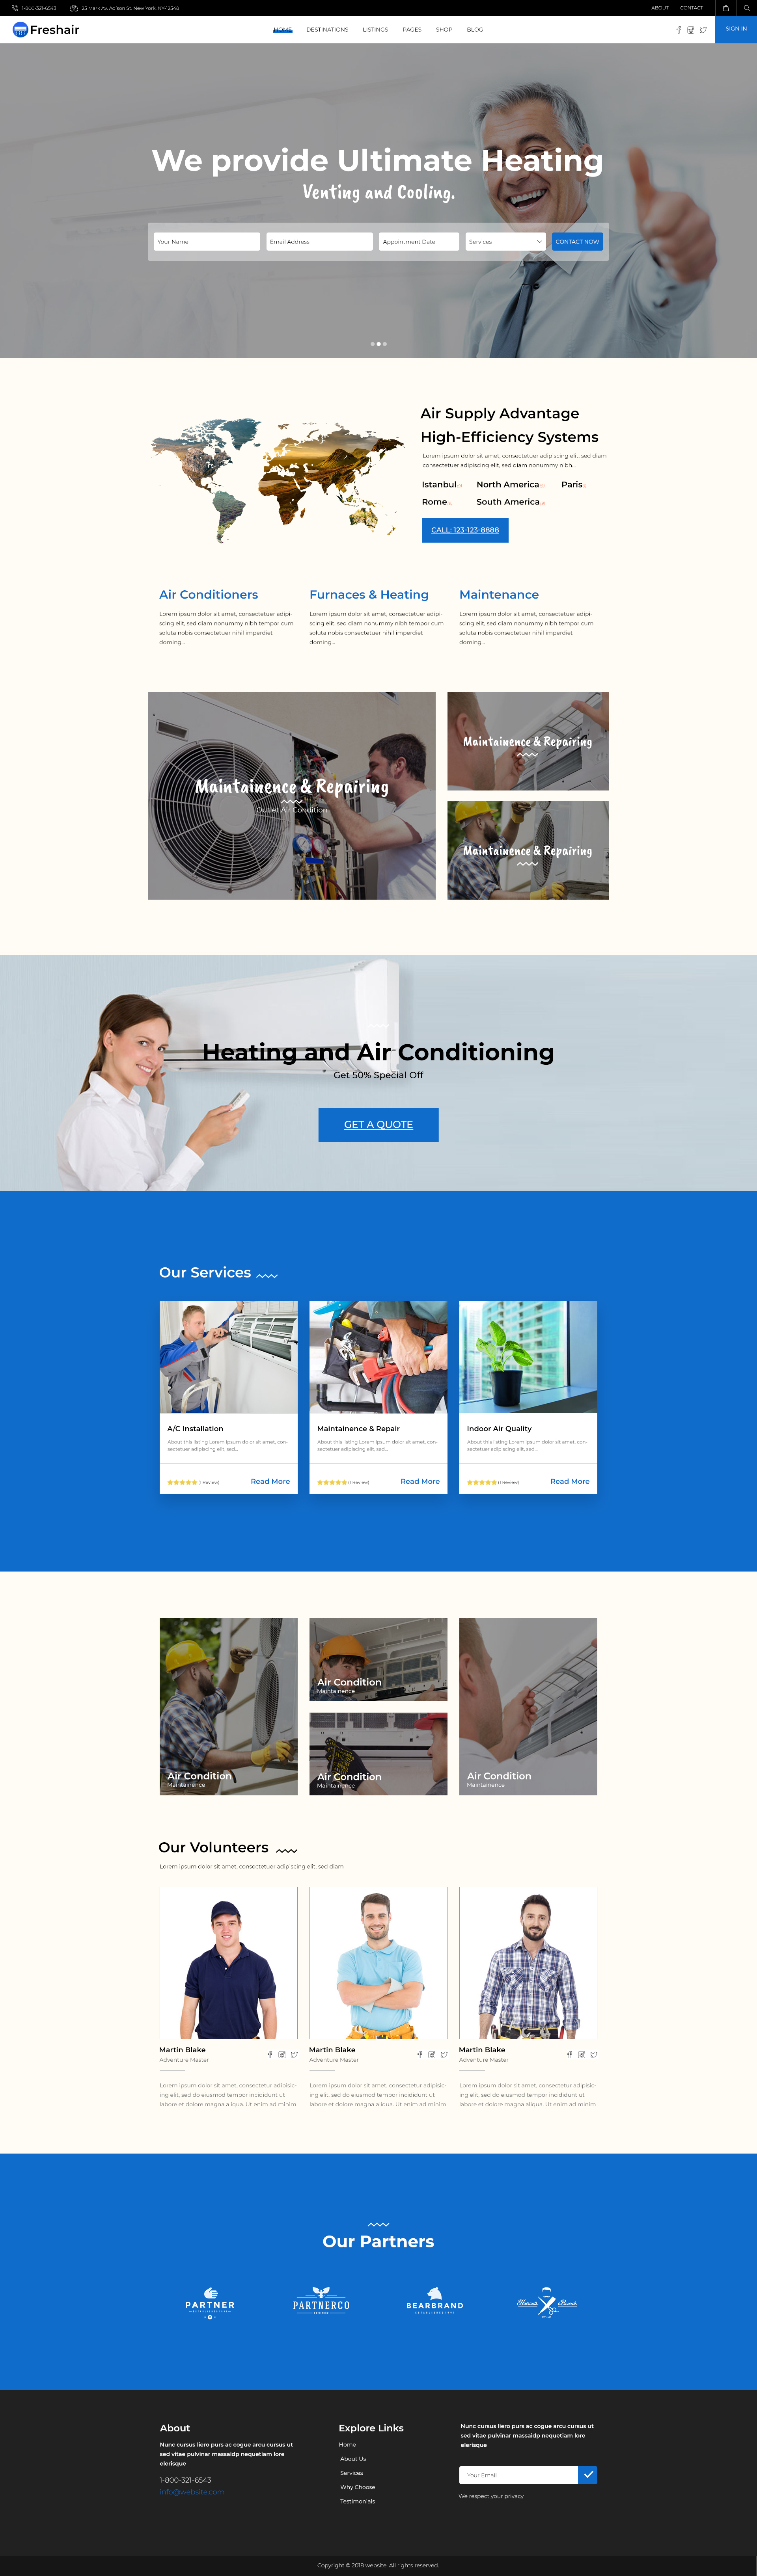 Air Conditioning And Heating WordPress Landing Page Theme For Maintenance and Services